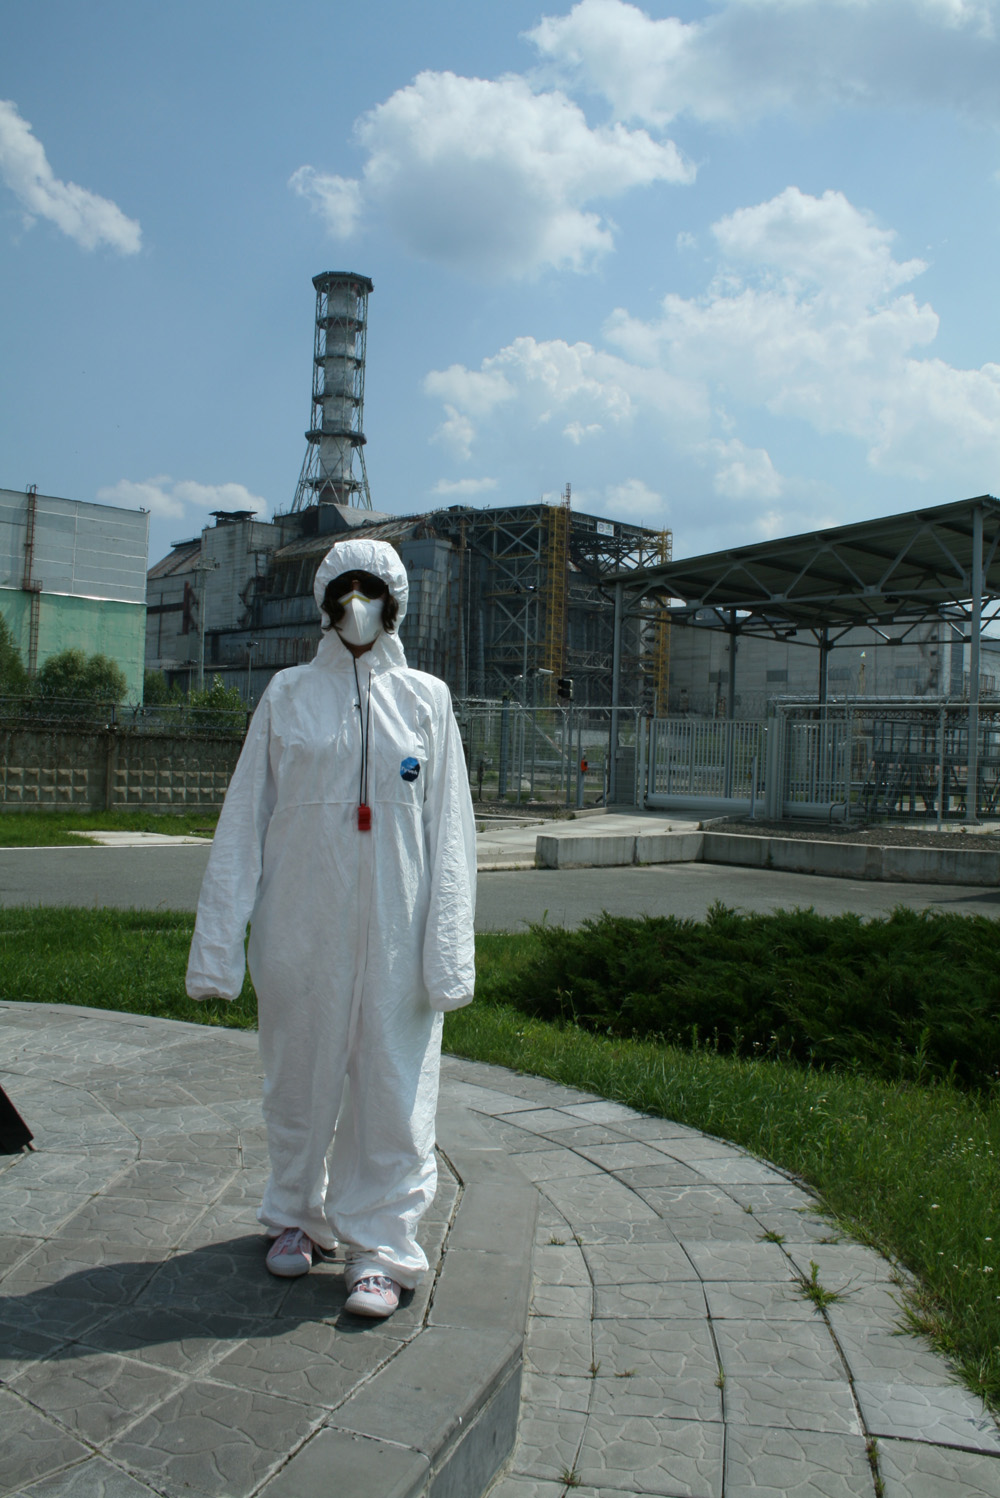 Nelly Ben Hayoun in front of Chernobyl nuclear reactor sarcophagus